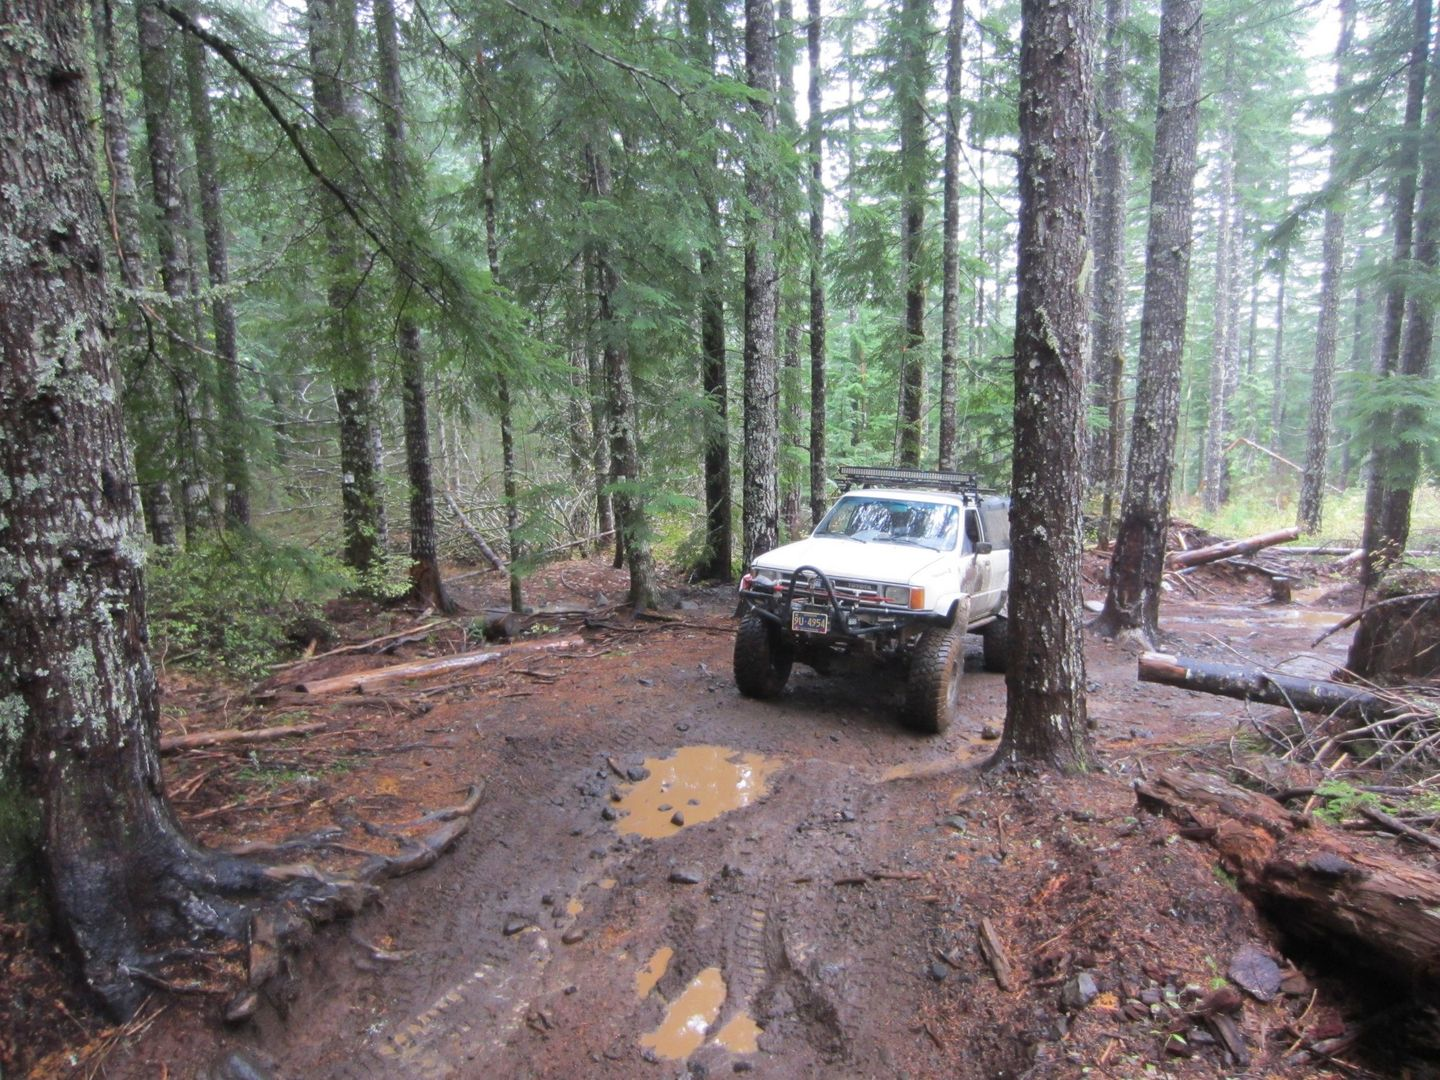 Firebreak Five / Tillamook State Forest - Waypoint 8: Both Paths Connect to the Same Place -- Left Path is More Challenging